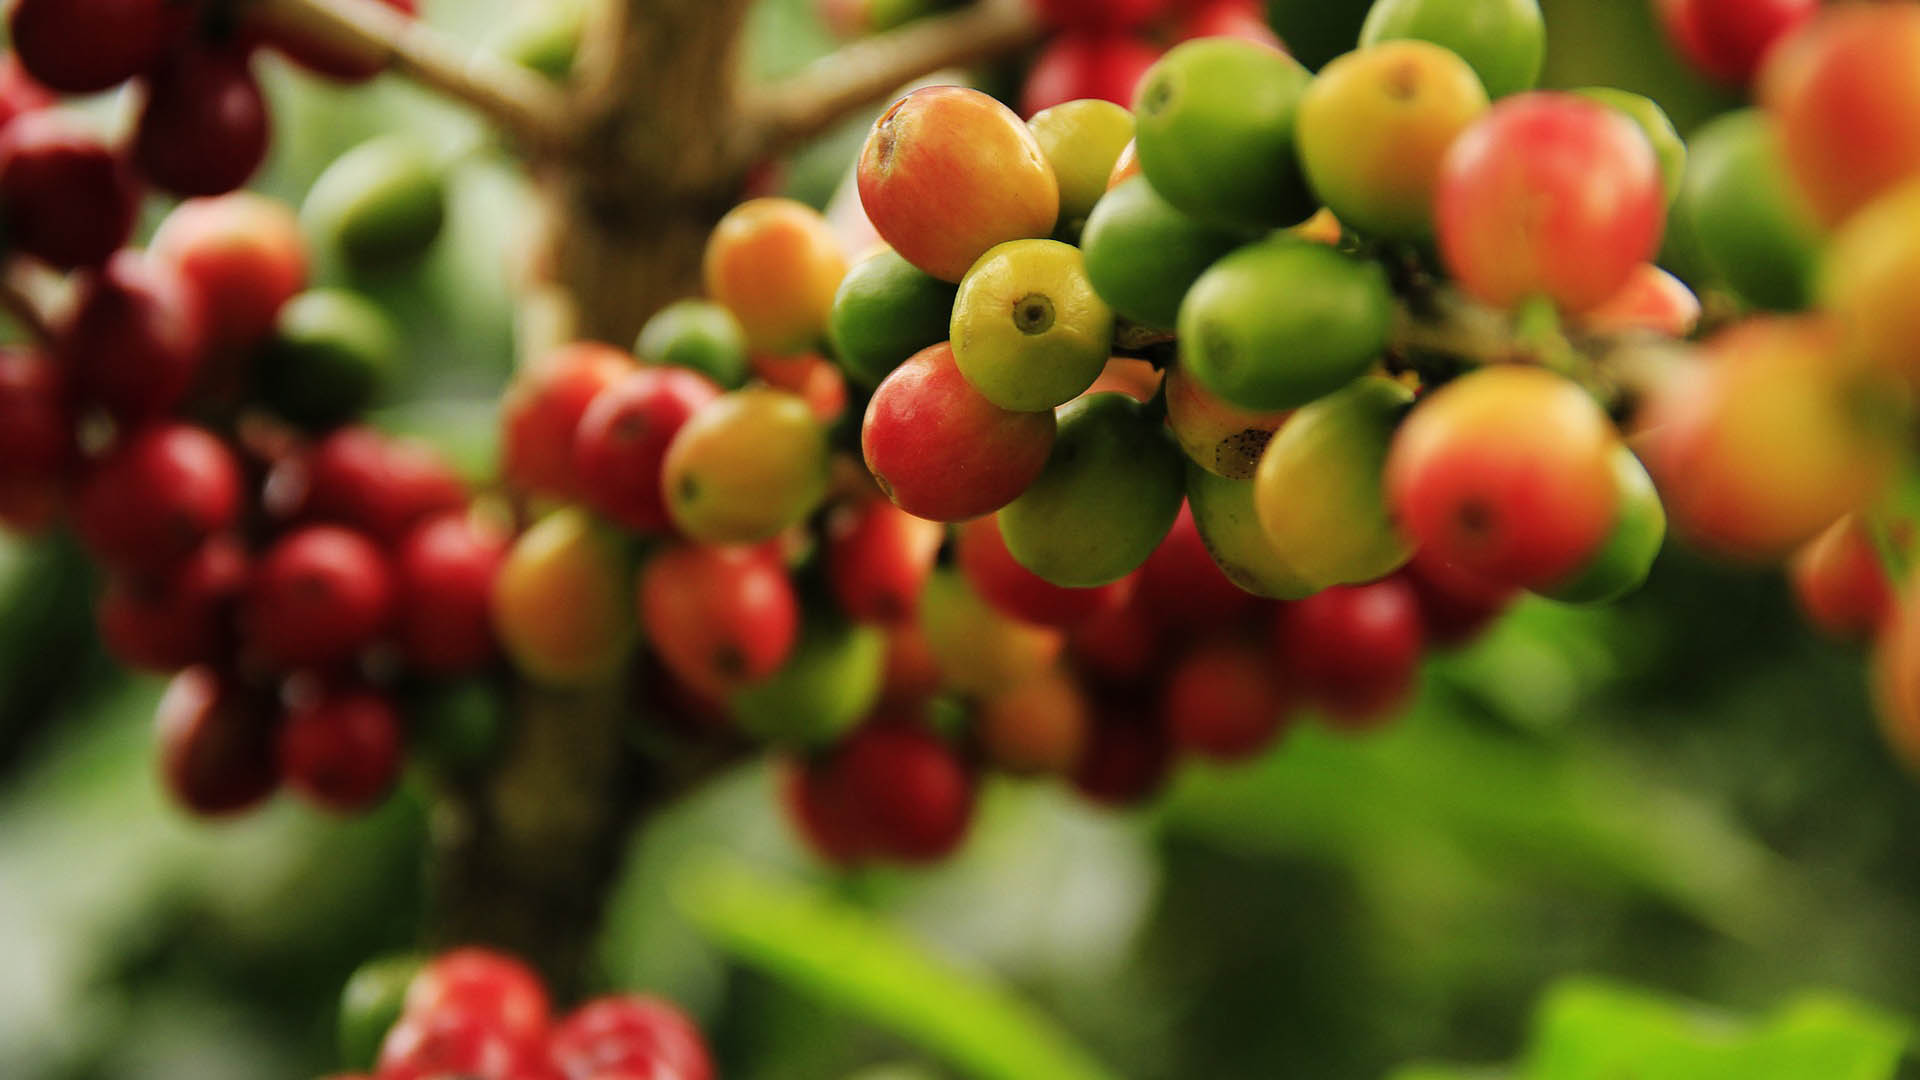 Brazil has been struck by frost, and as a result, numerous prime agricultural exports are suffering. This includes, coffee, corn and citrus. Photo: Supplied/Food For Mzansi